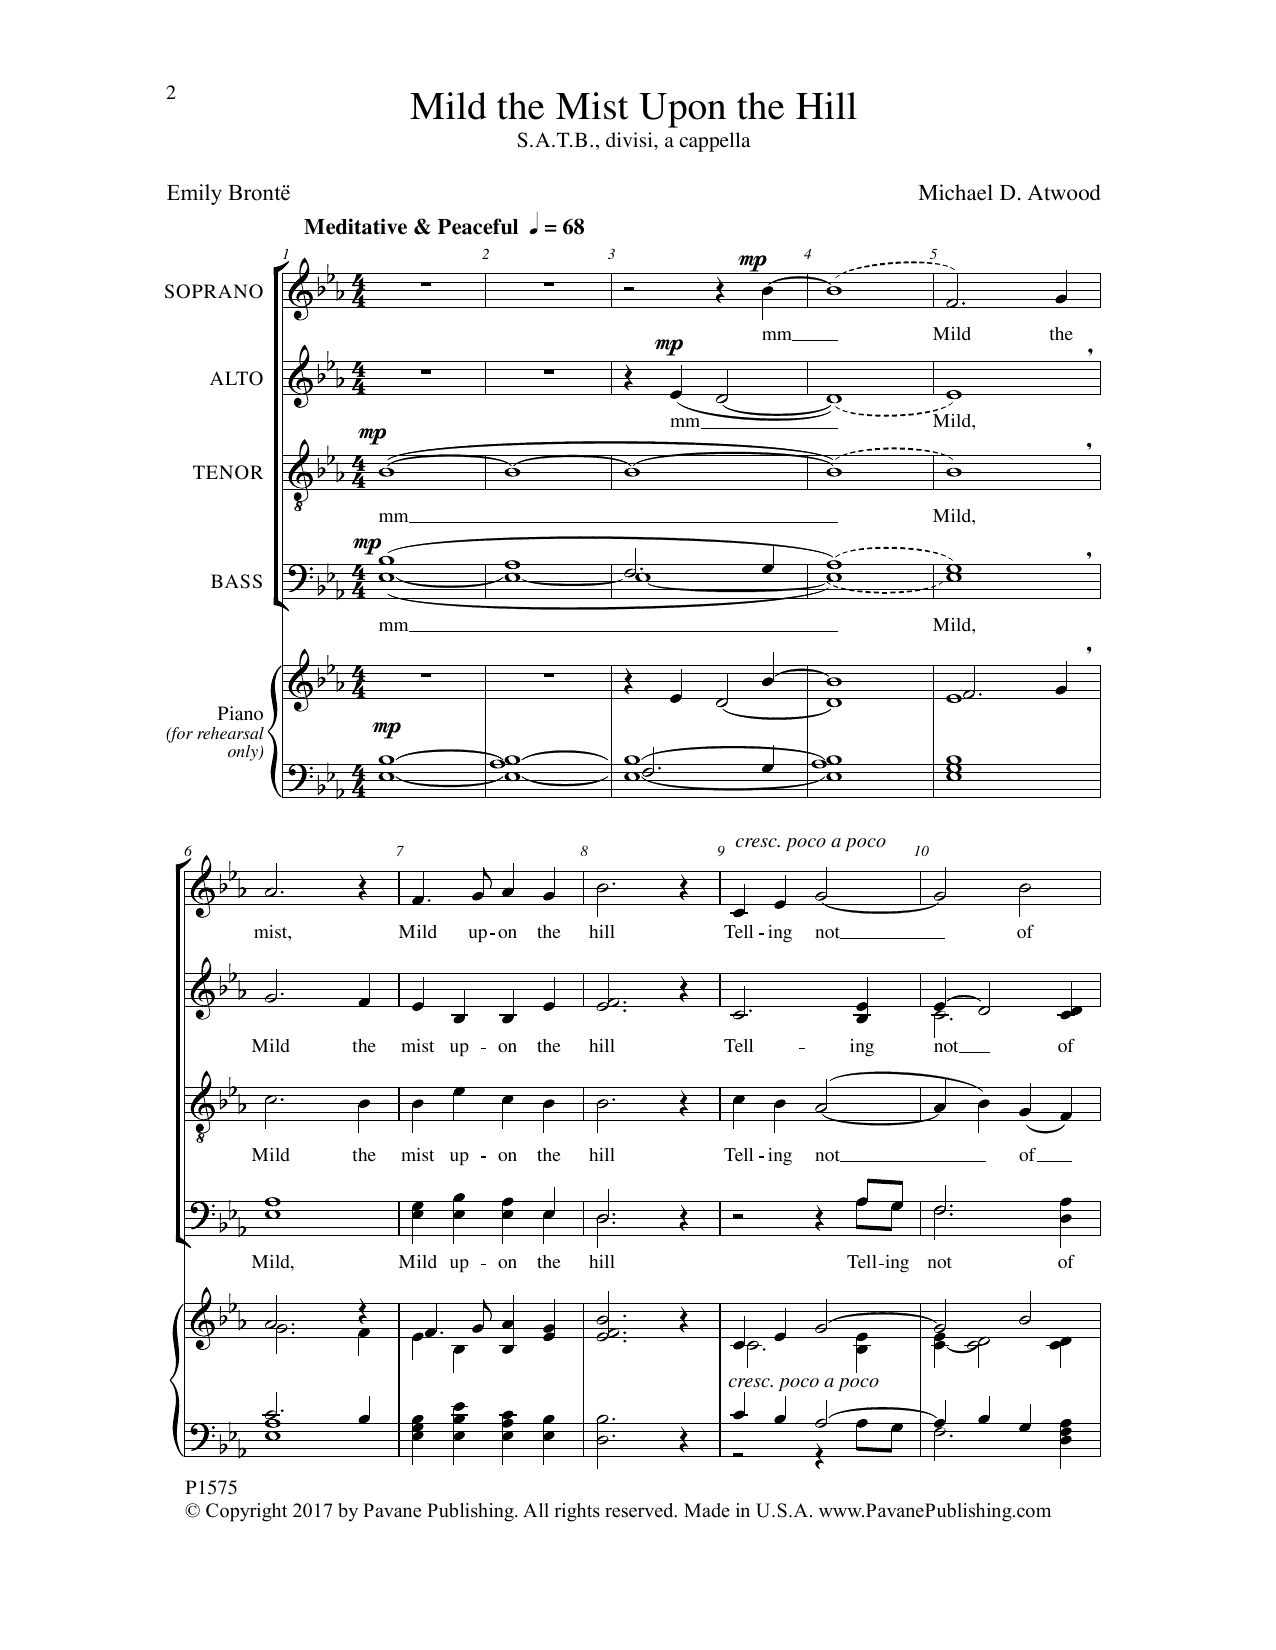 Mild the Mist upon the Hill Sheet Music